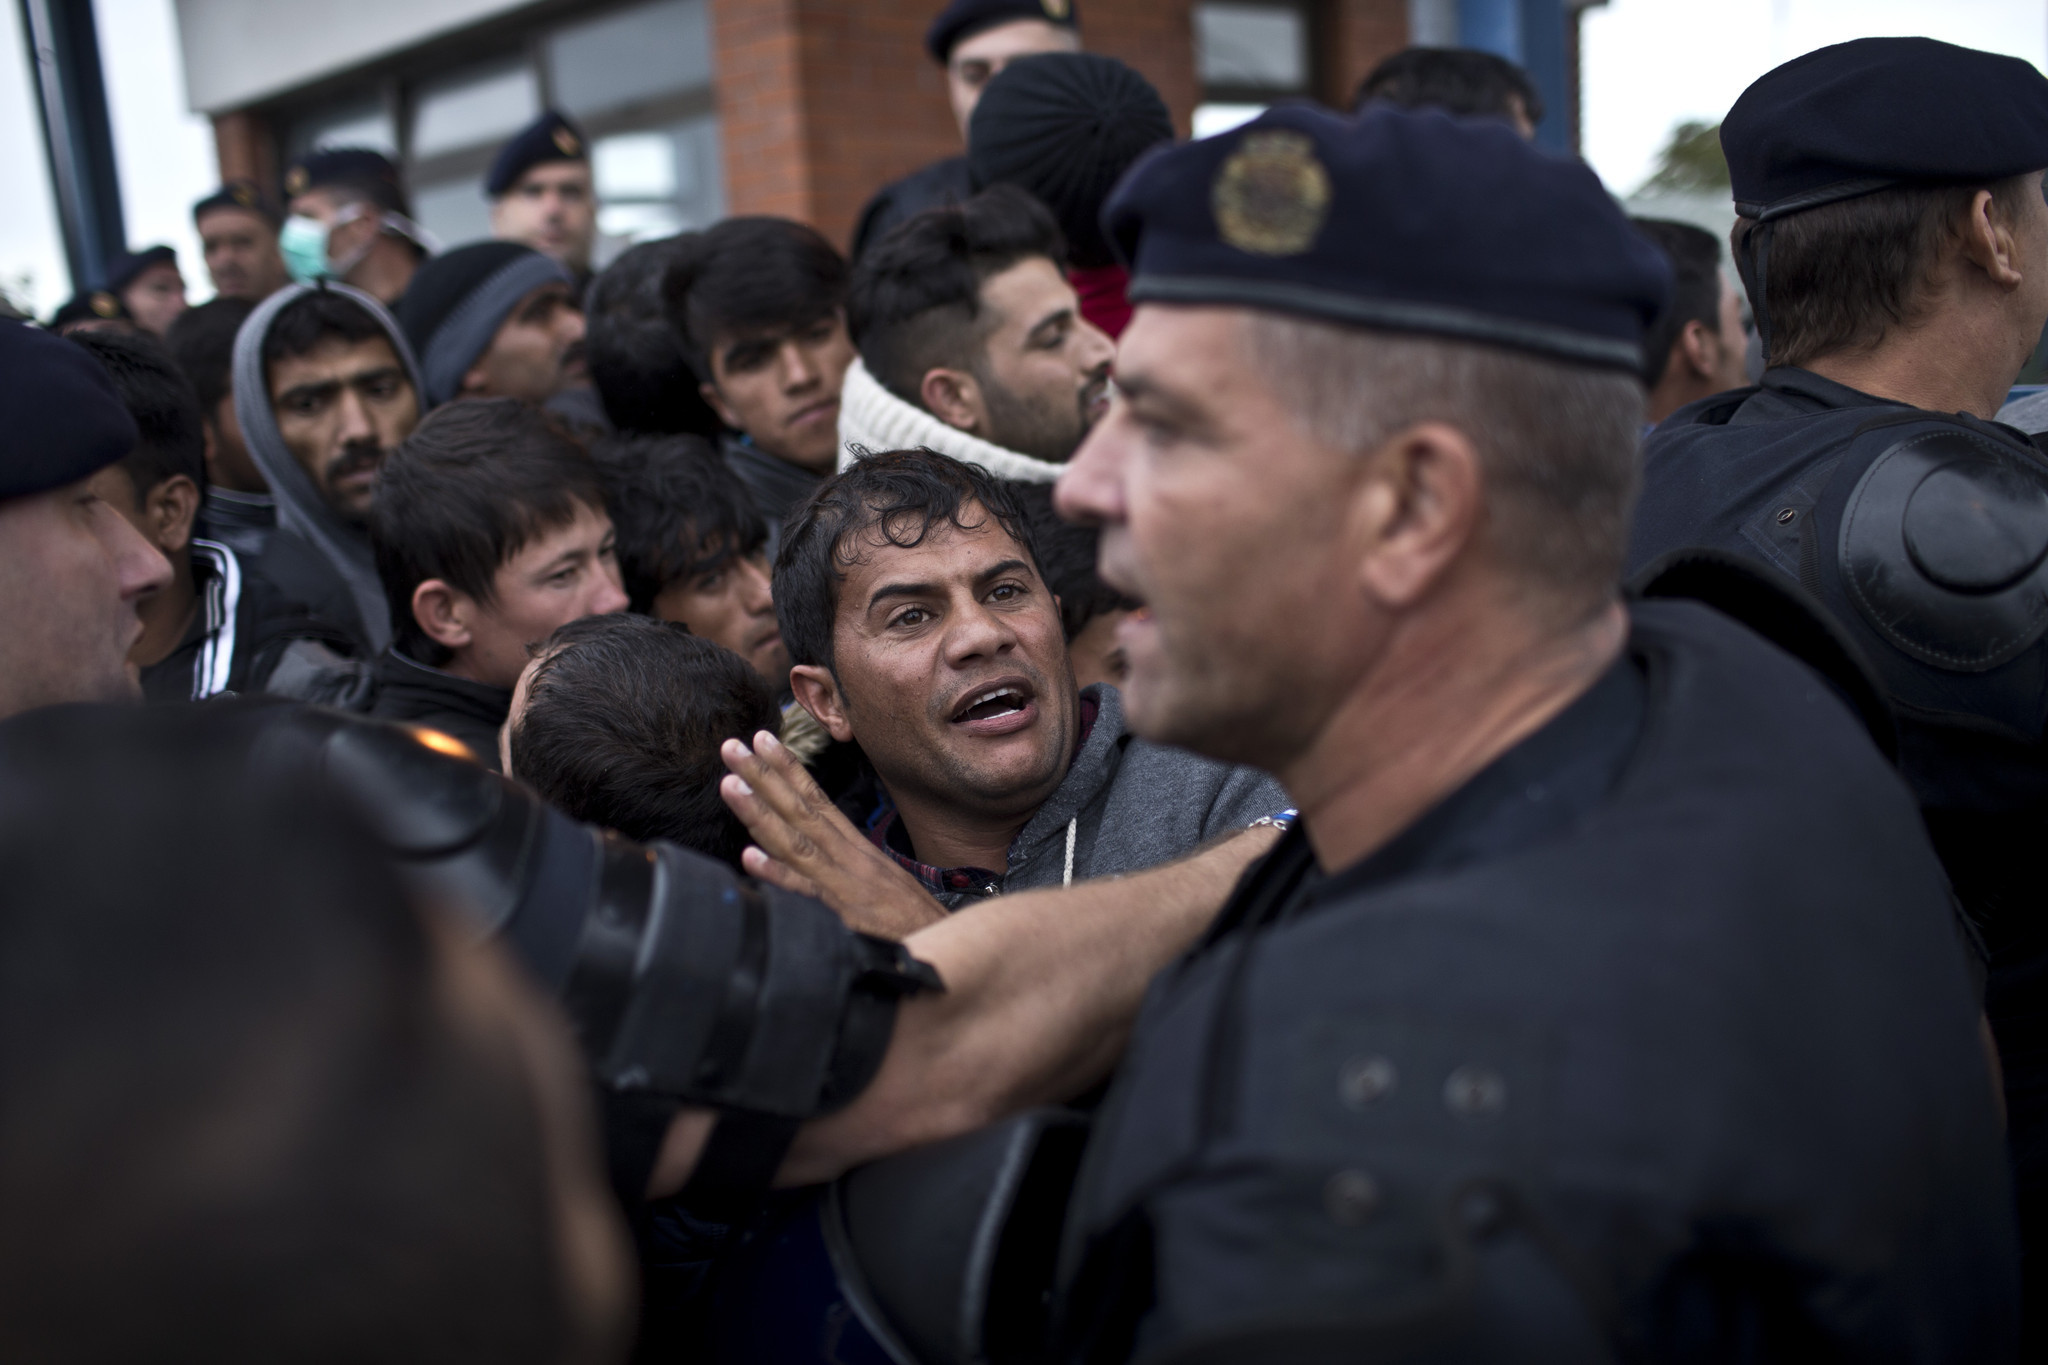 EU ministers agree to relocate 120,000 migrants